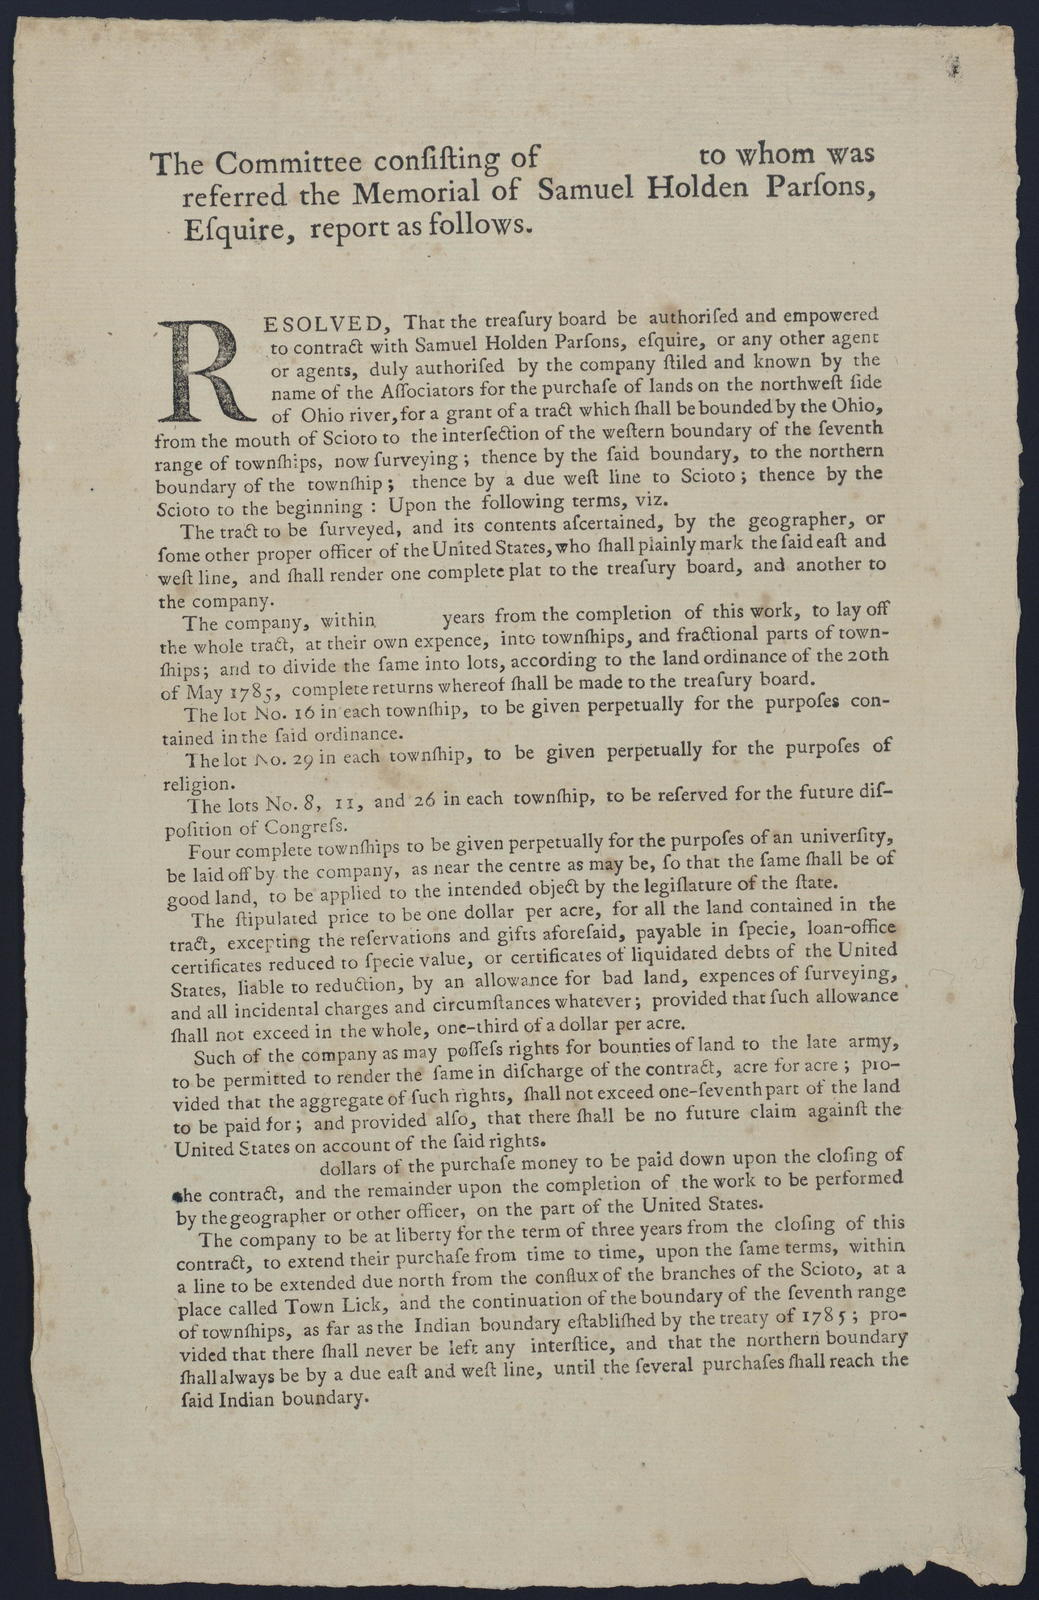 The committee consisting of [blank] to whom was referred the memorial of Samuel Holden Parsons, Esquire, report as follows : Resolved, that the treasury board be authorised and empowered to contract with Samuel Holden Parsons, Esquire, or any other agent or agents, duly authorised by the company stiled and known by the name of the associators for the purchase of the lands on the northwest side of Ohio River ...